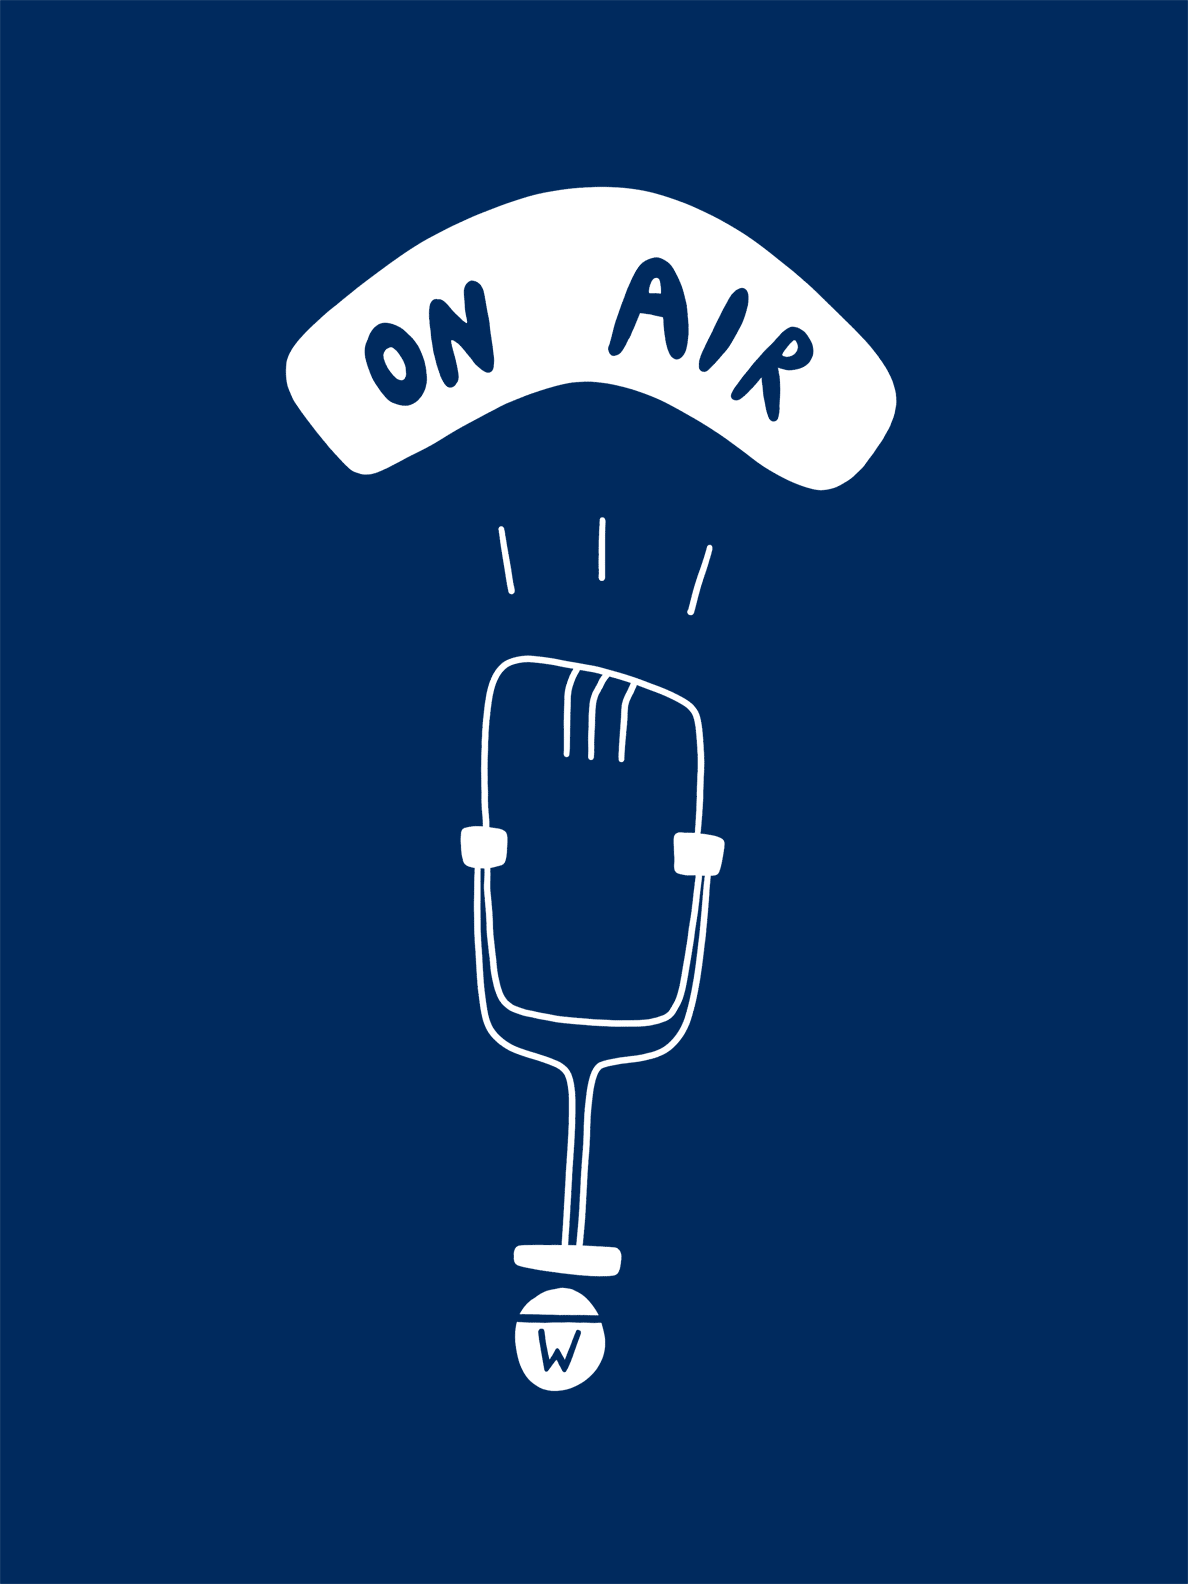 A microphone on air